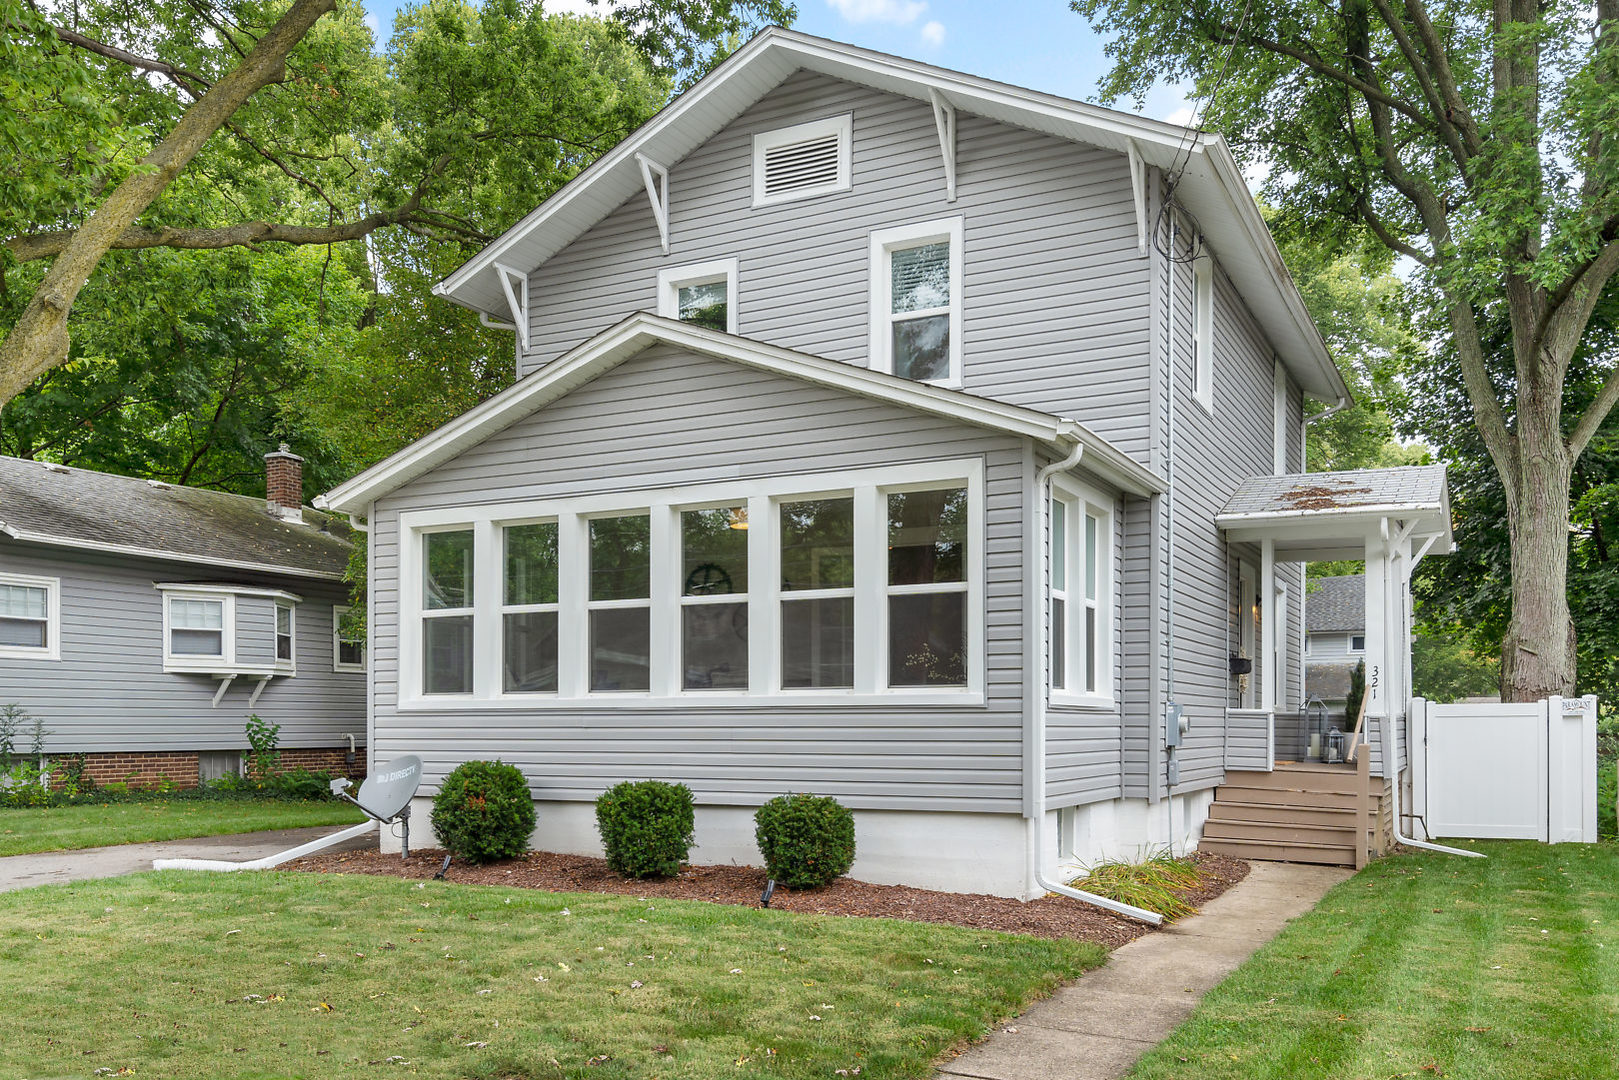 Photo for 321 Franklin Street, Batavia, IL 60510 (MLS # 10517160)